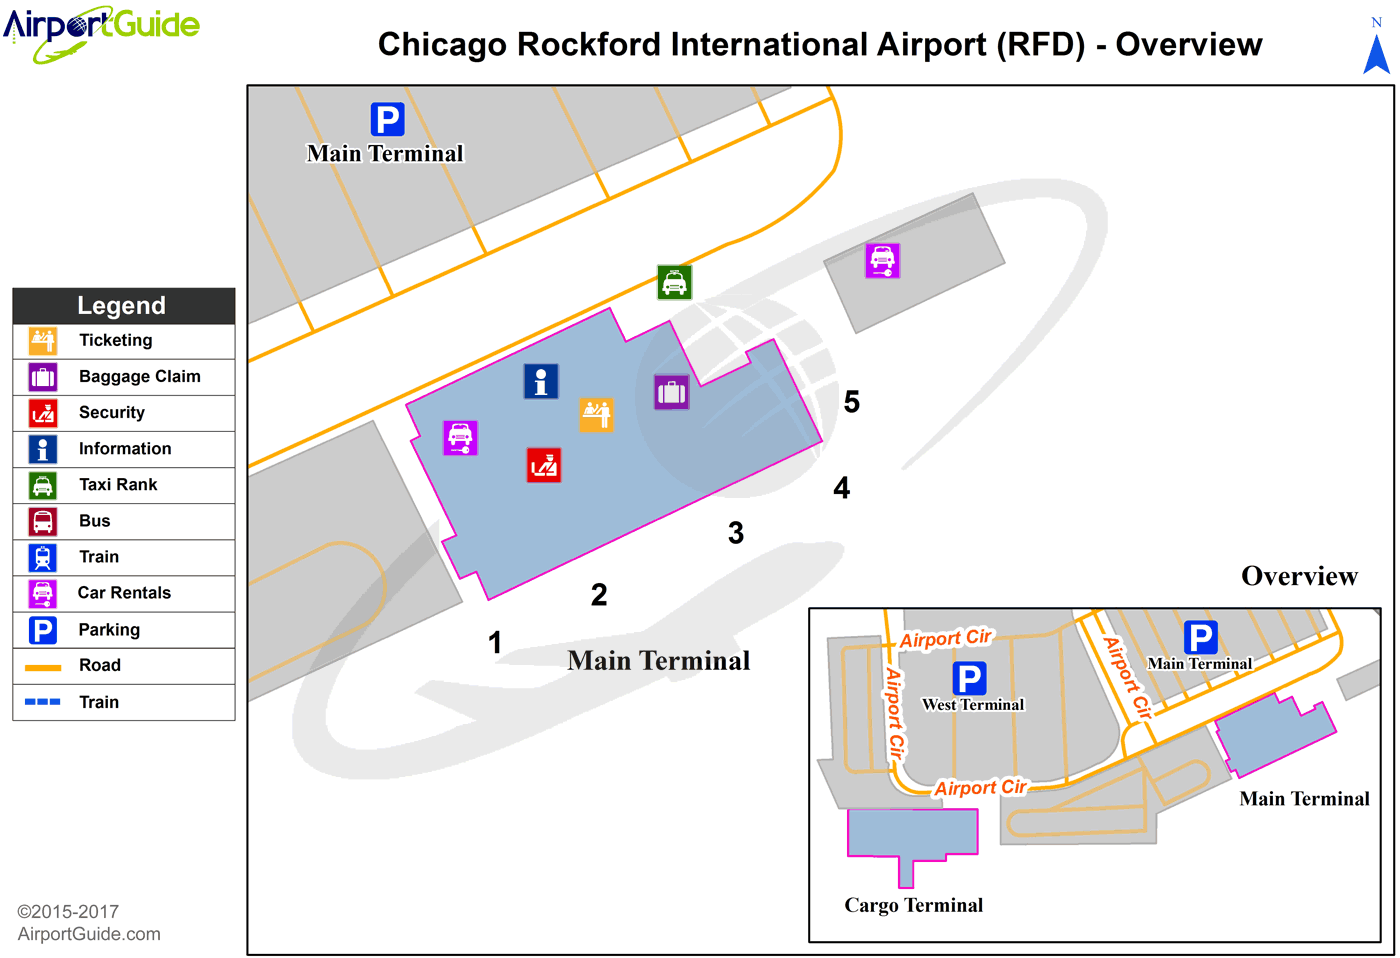 ChicagoRockford ChicagoRockford International RFD Airport